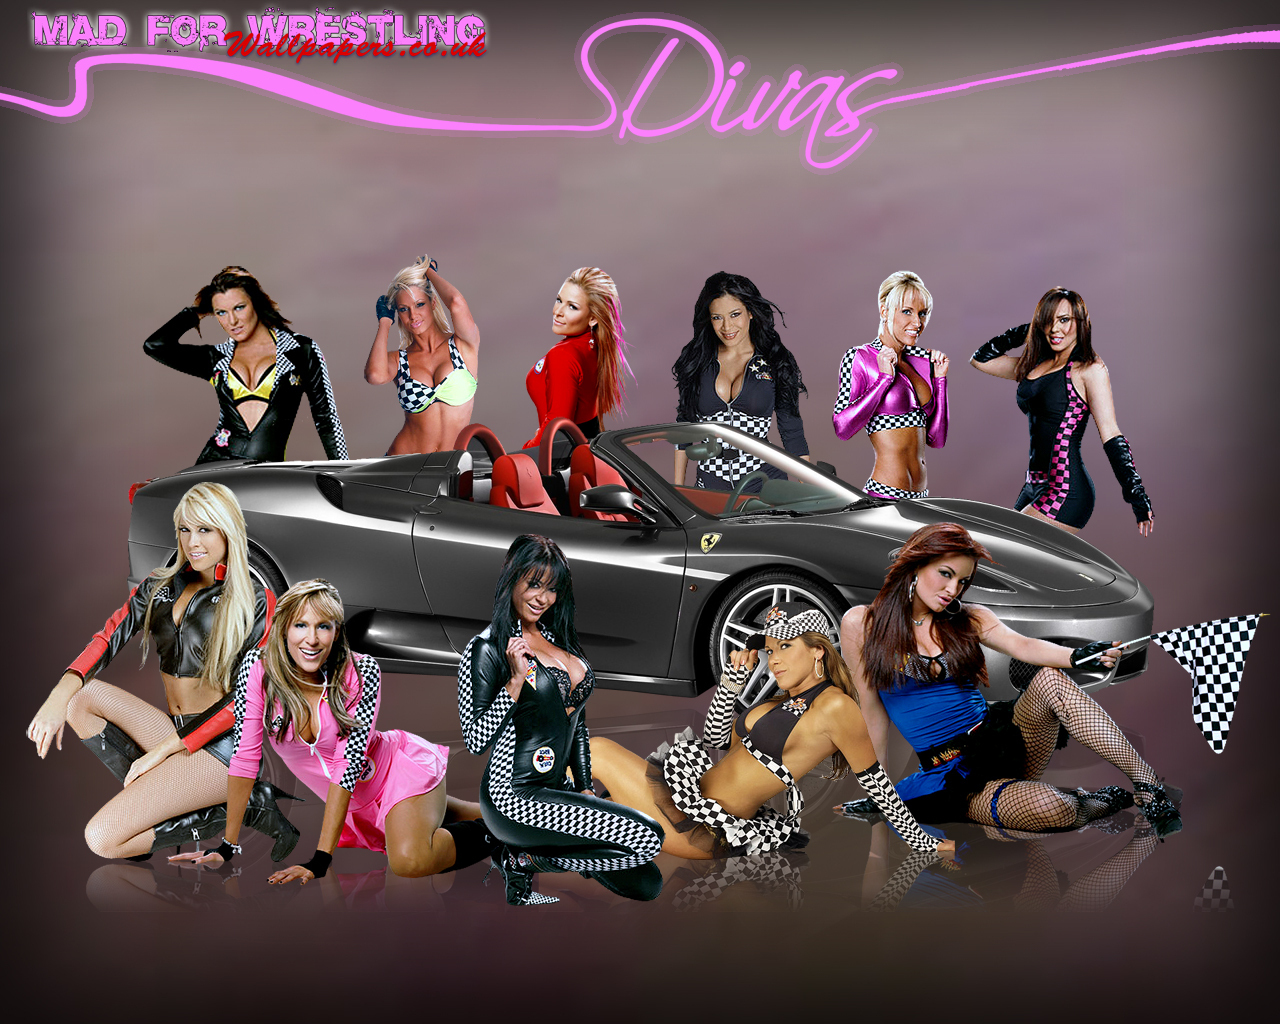 Mashababko wwe diva wallpapers 2011 - Wwe divas wallpapers ...